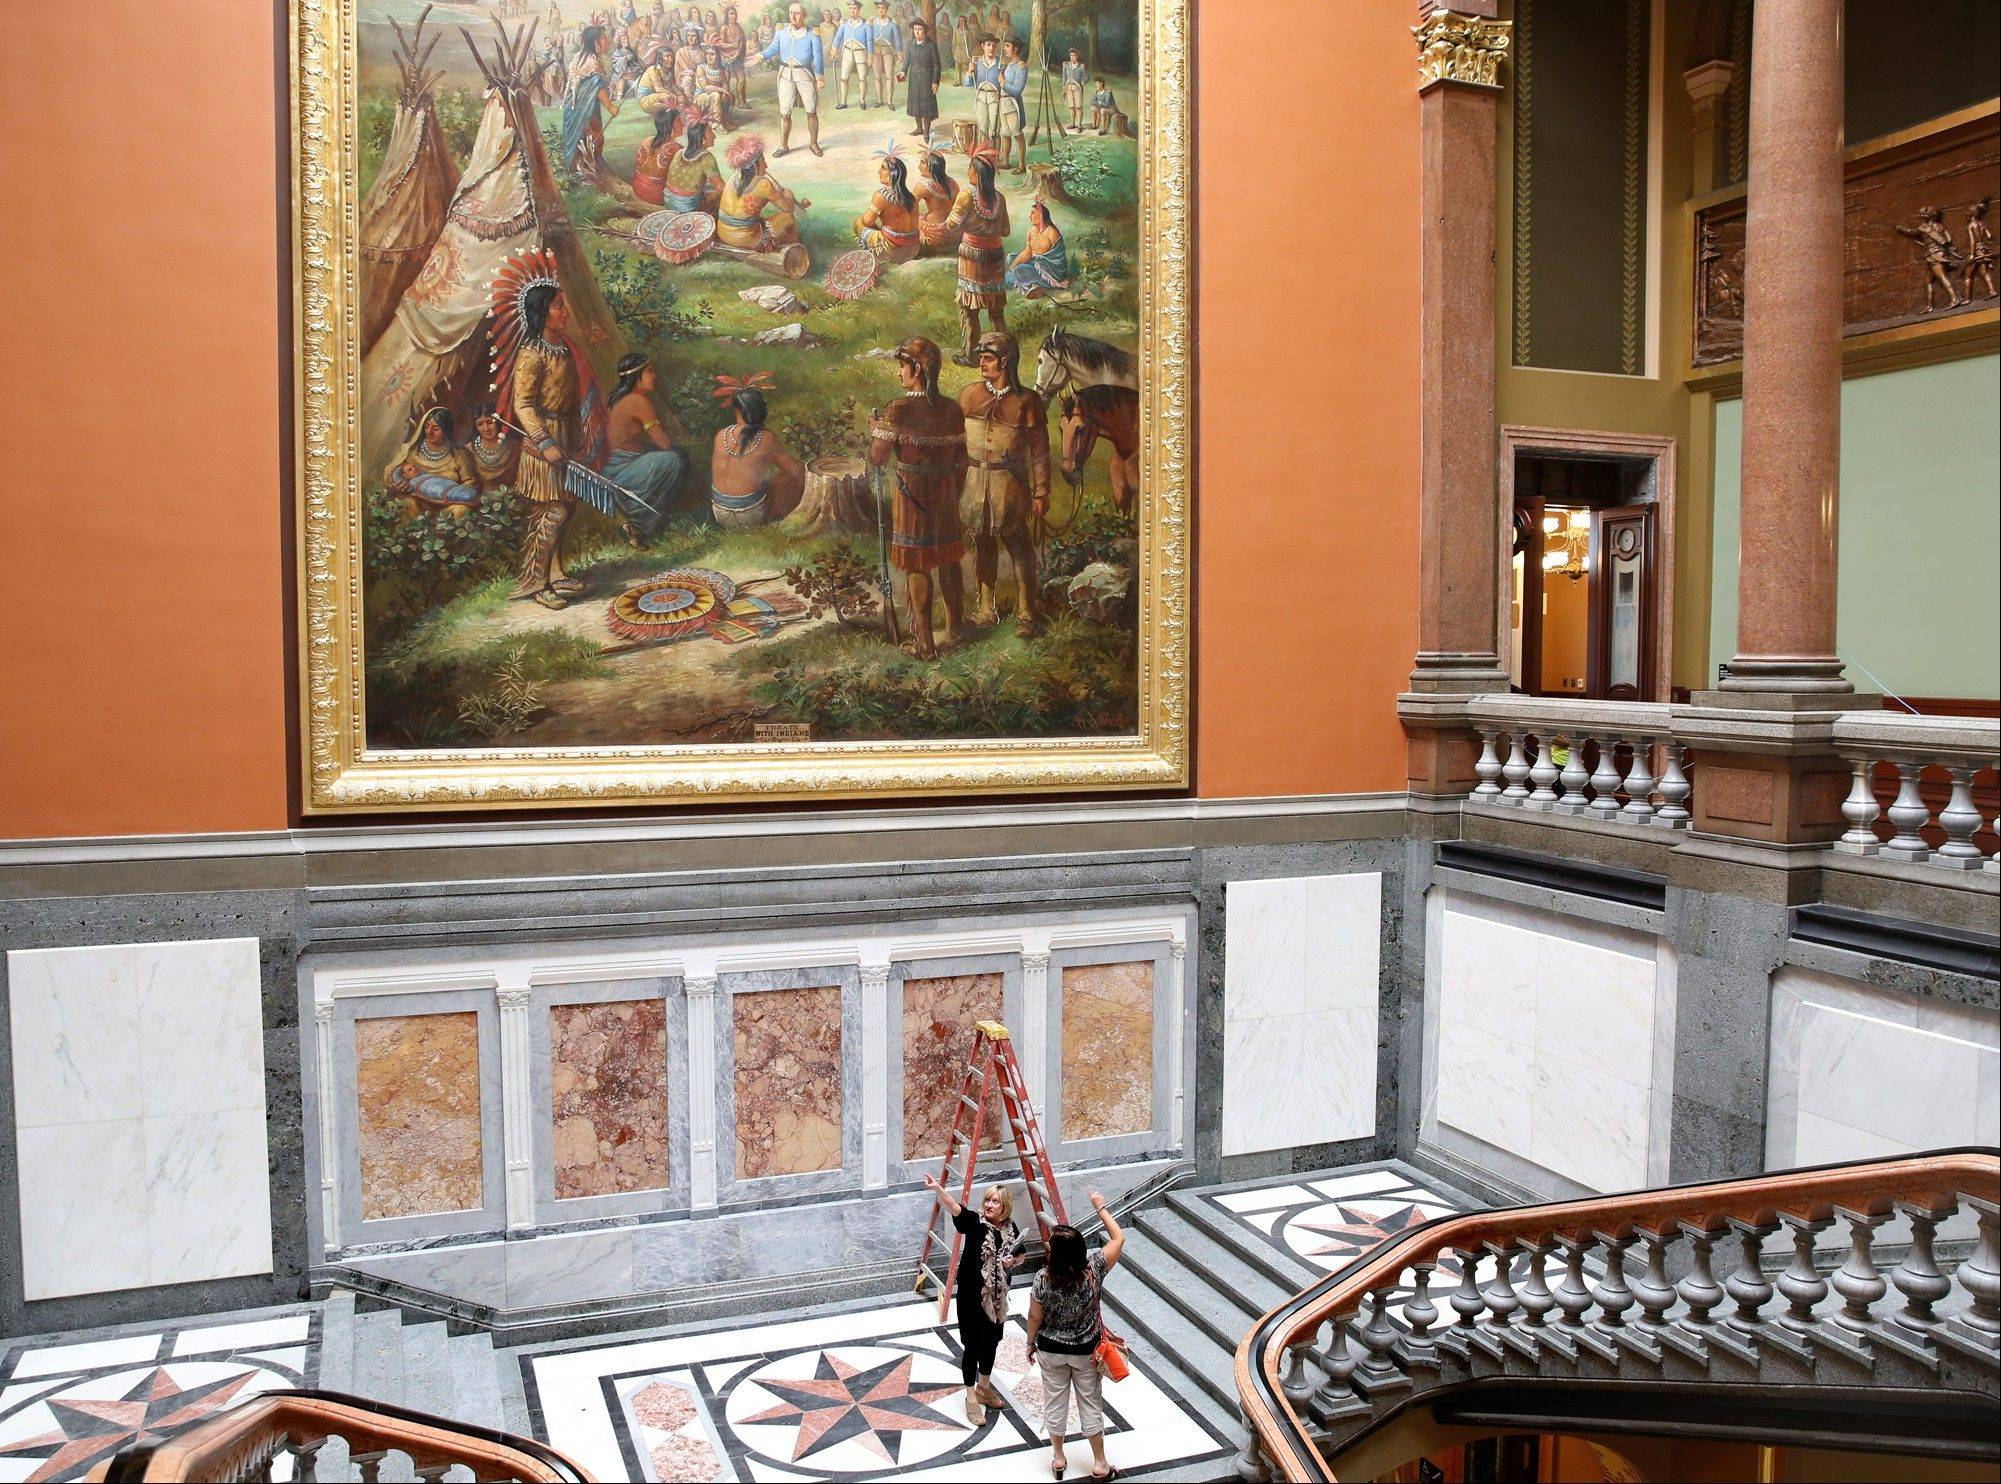 Mezzanine-level offices in the west wing of the state Capitol, which were entered through doors below the mural, have been eliminated as part of a two-year, $50 million renovation project.